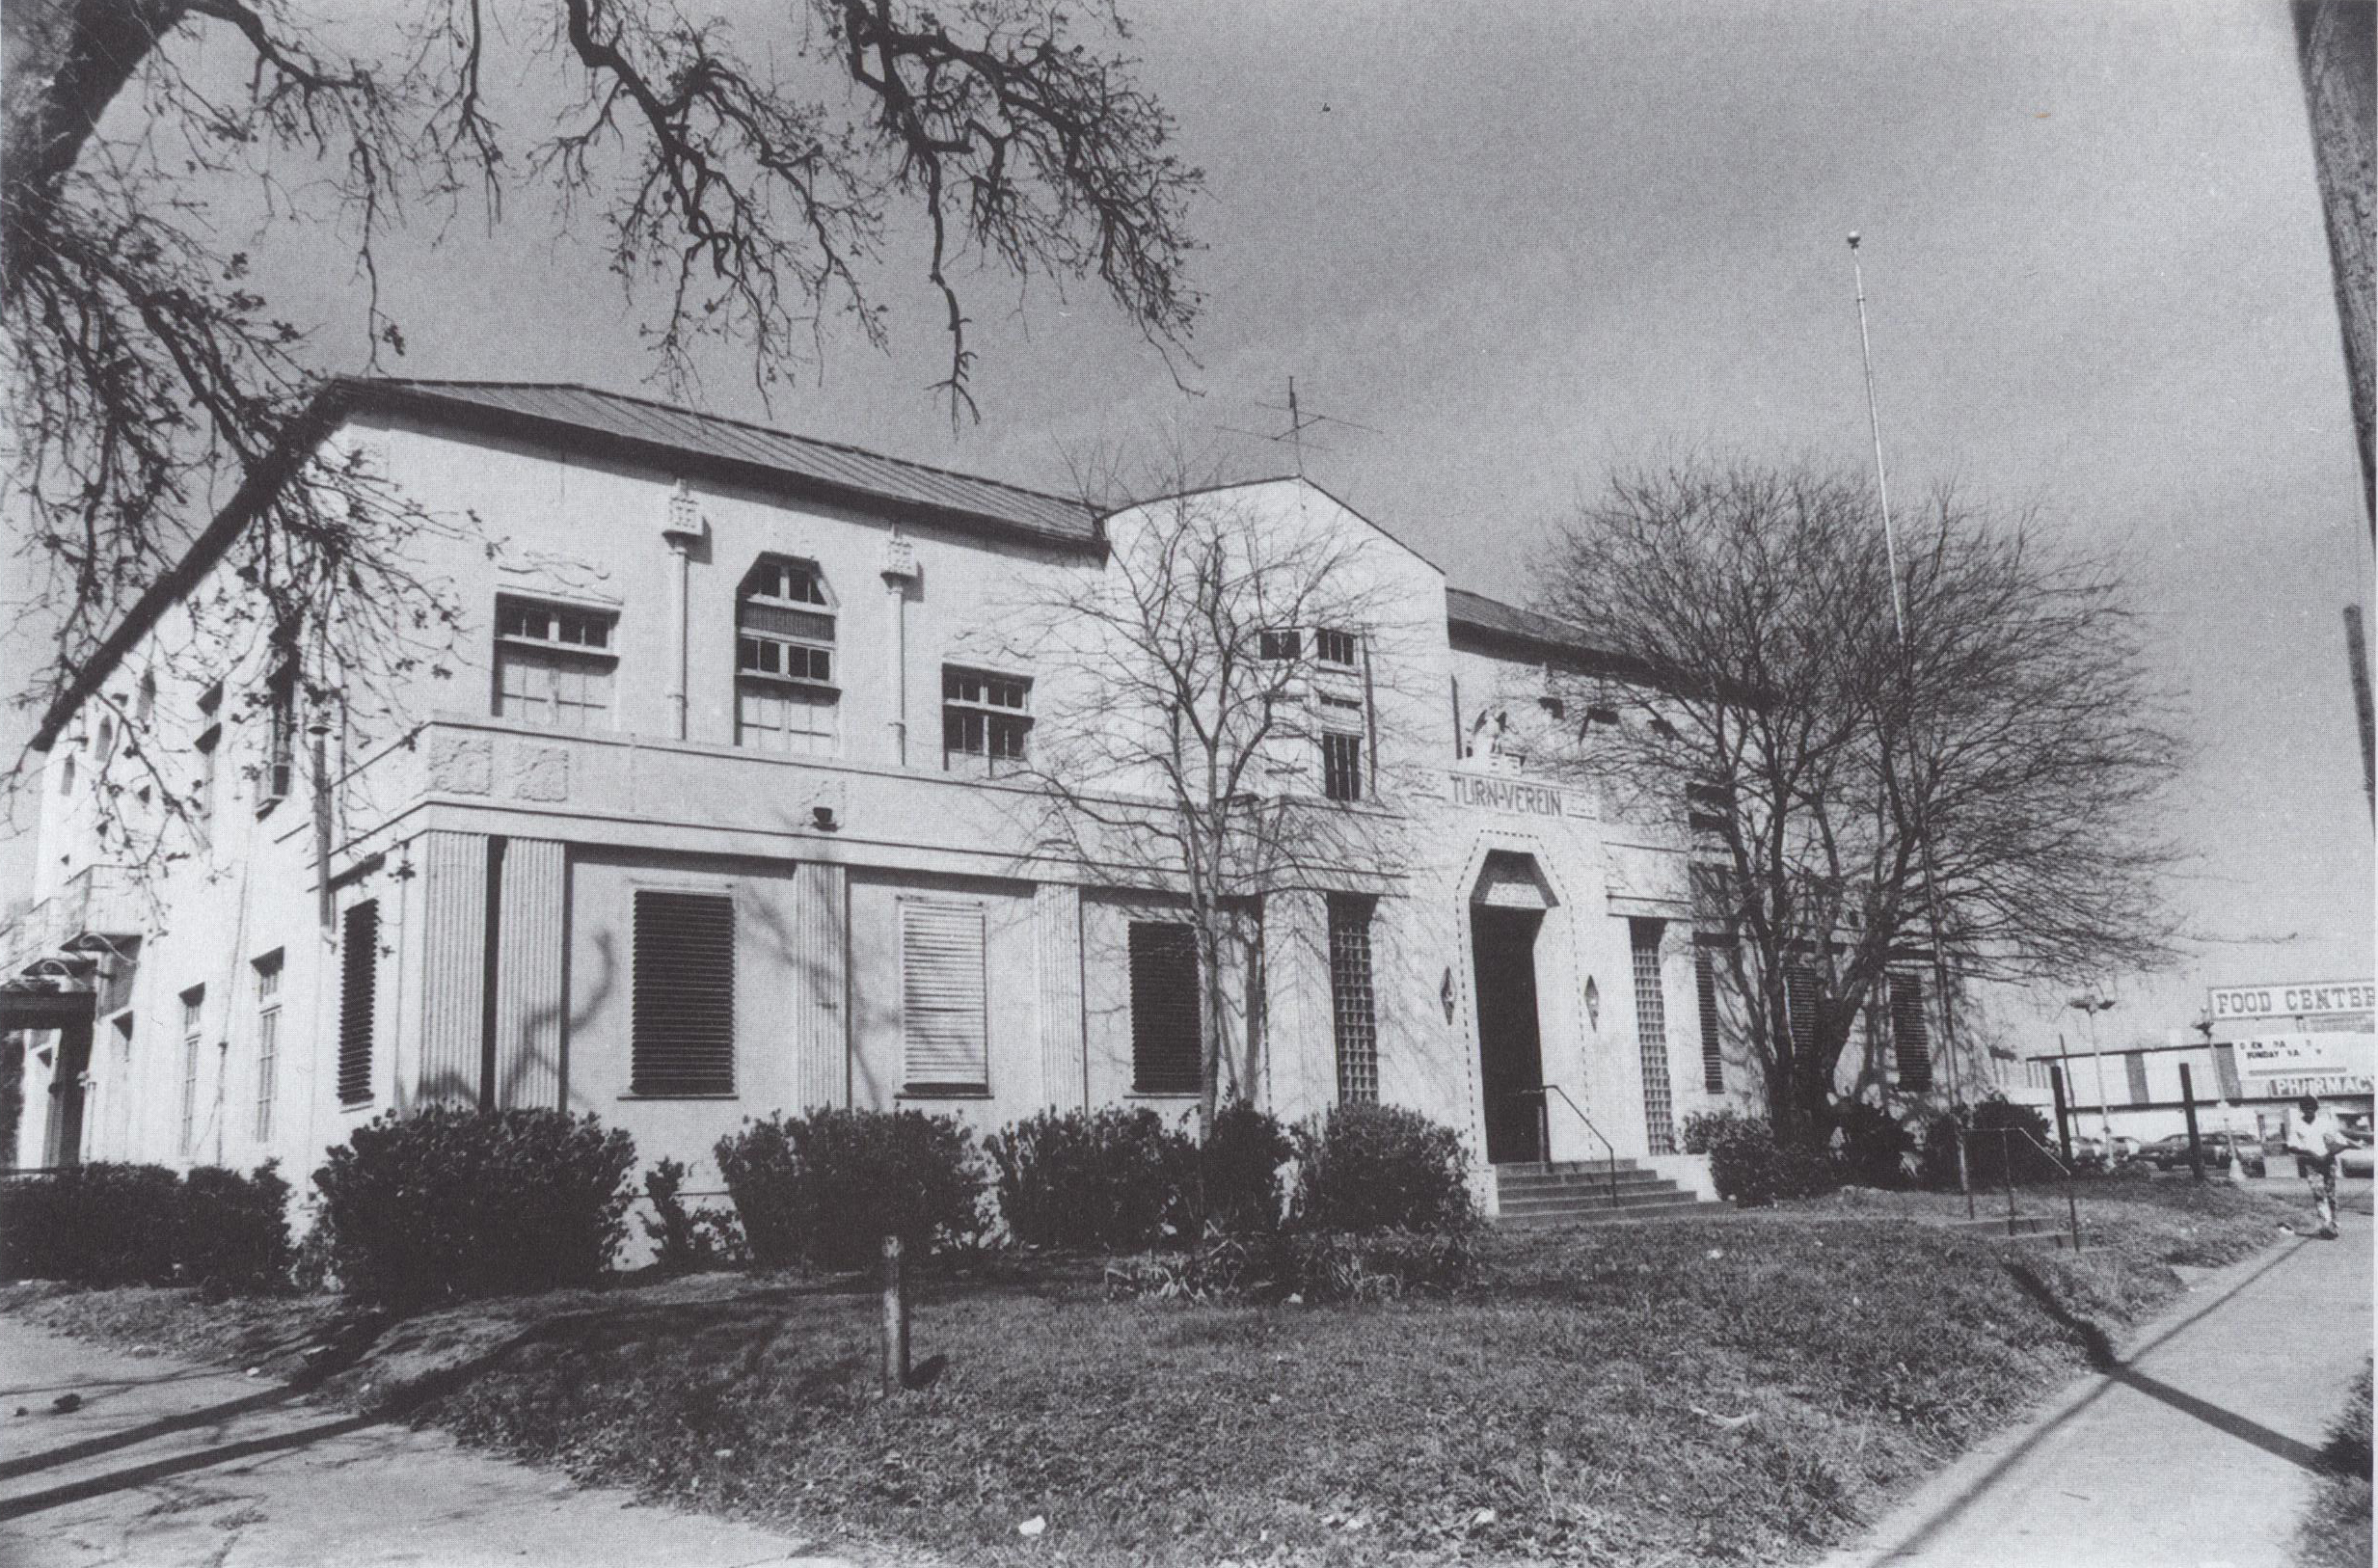 designed by architect Joseph Finger, the Turnverein Clubhouse stood at 5502 Almeda Road. An acknowledged local Art Moderne landmark, The Building was destroyed in 1993. Courtesy HMRC, Houston Public Library.